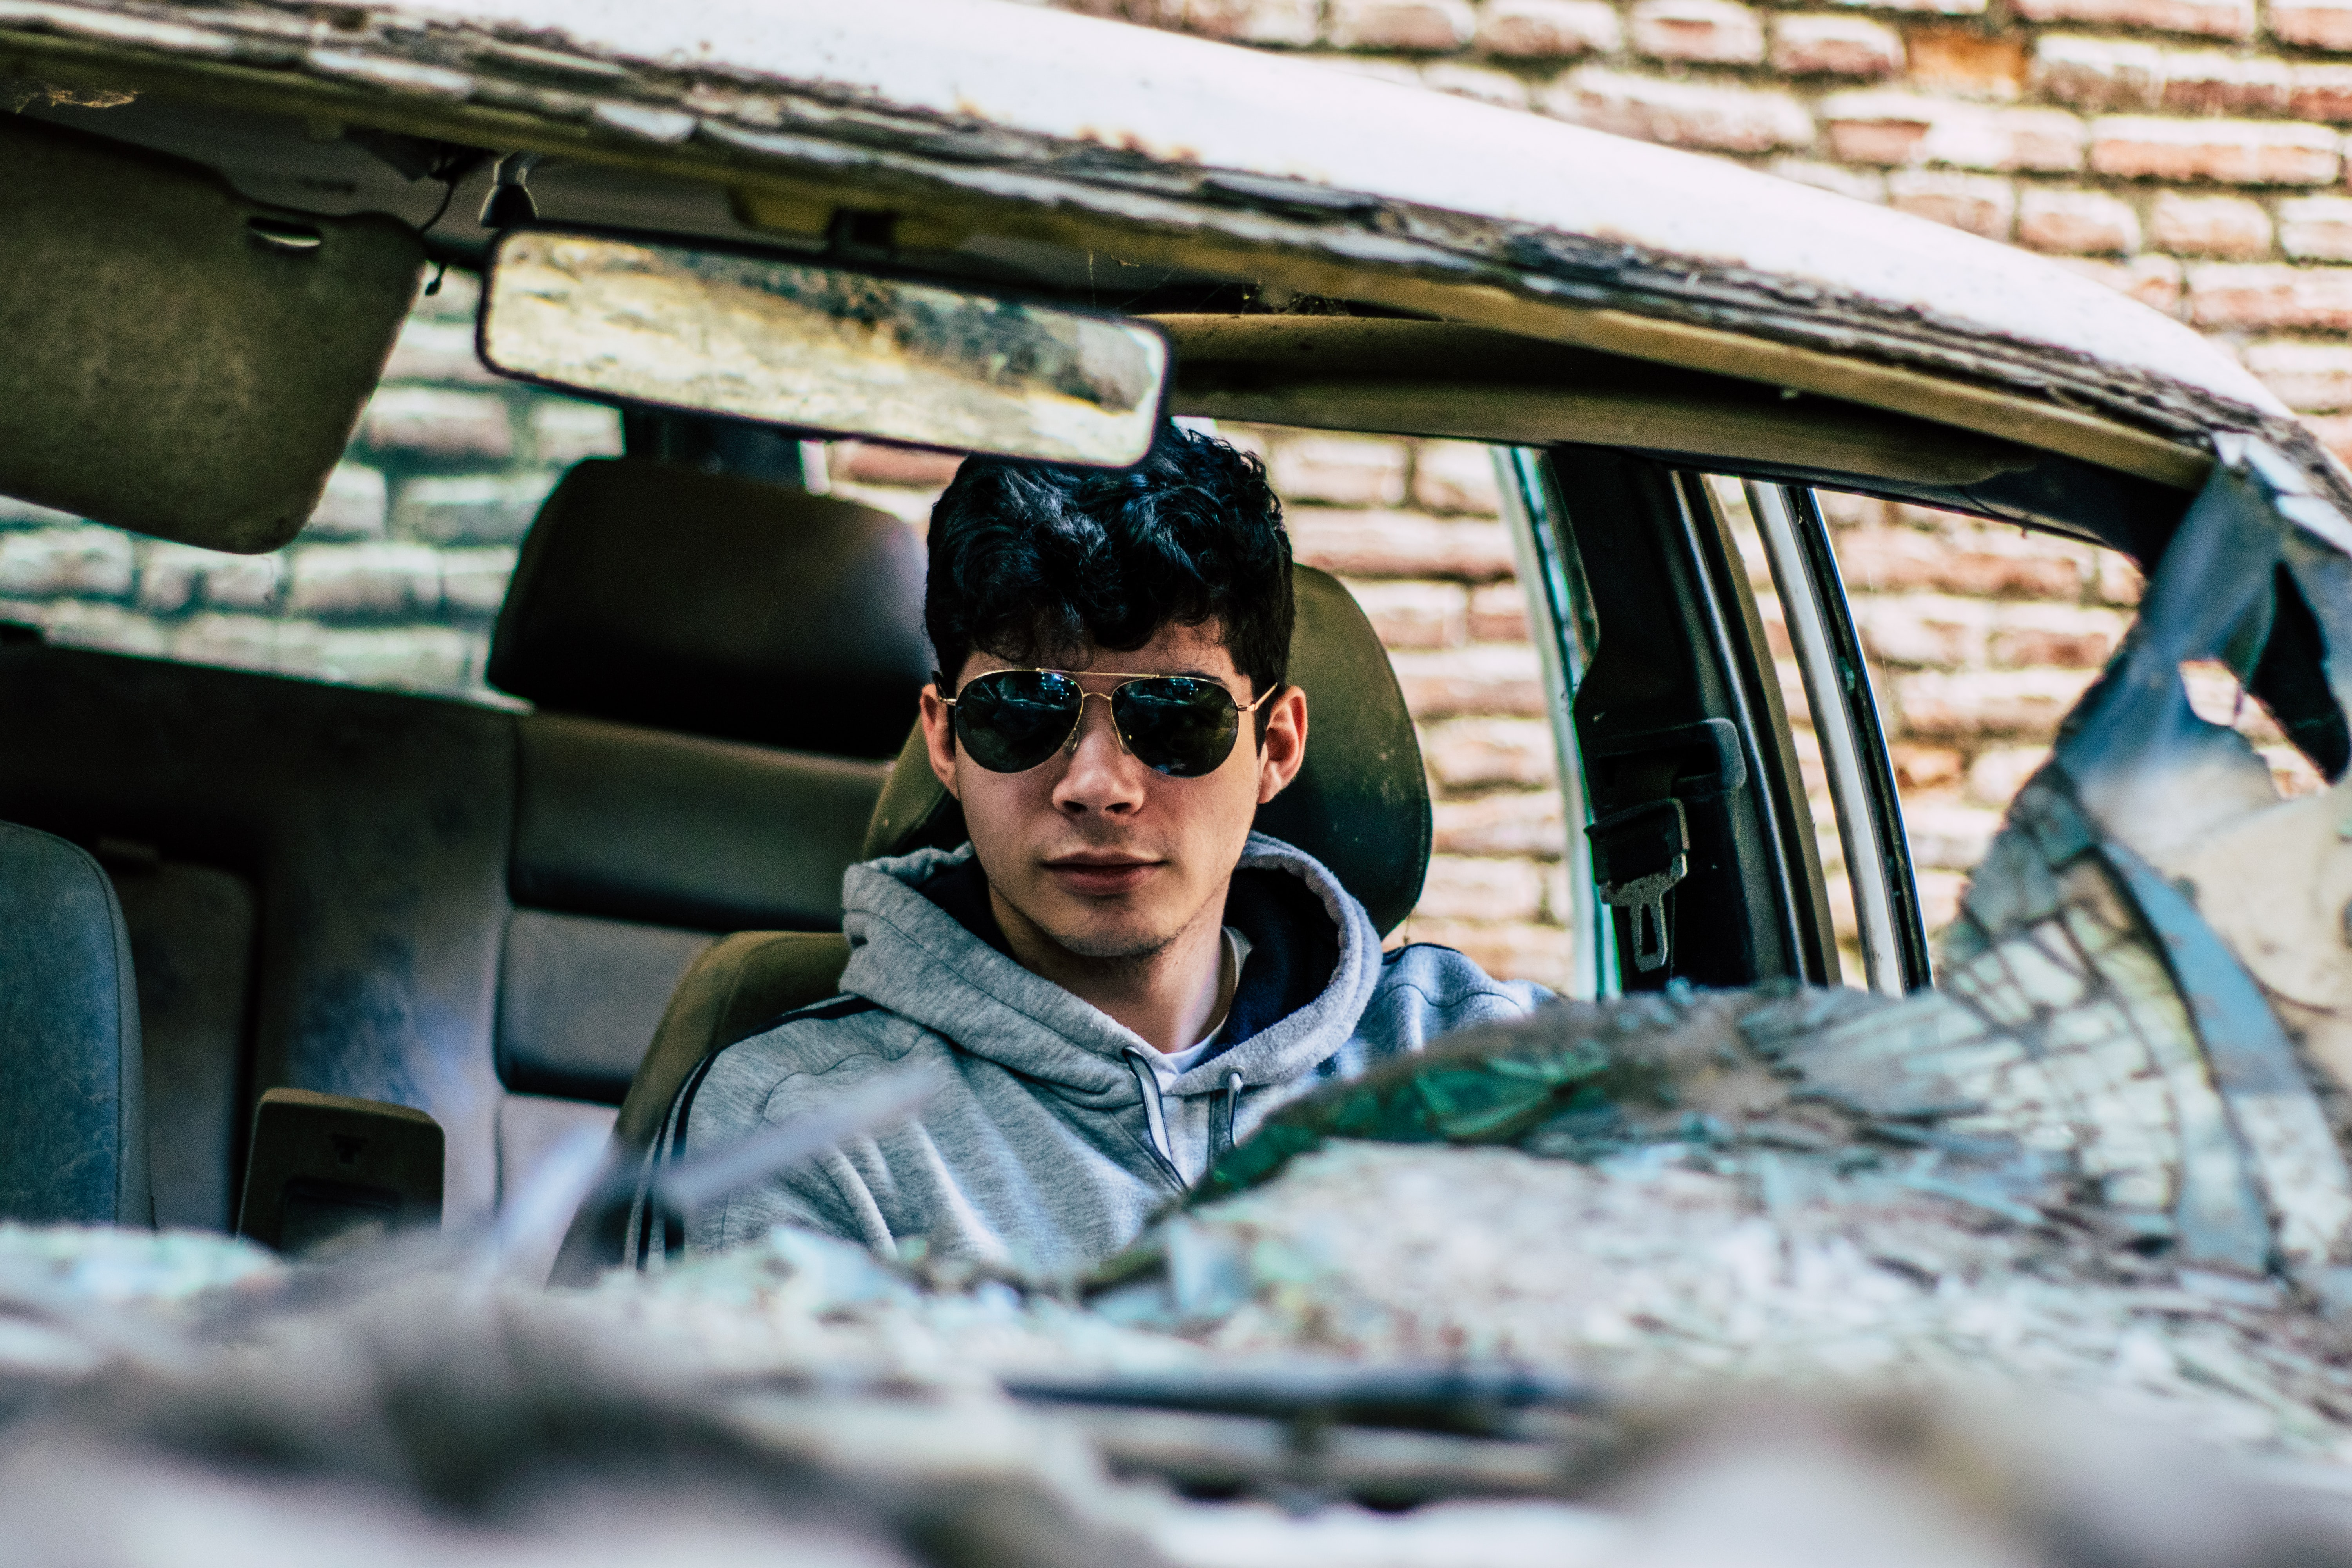 man wearing gray hoodie and sunglasses inside wrecked car